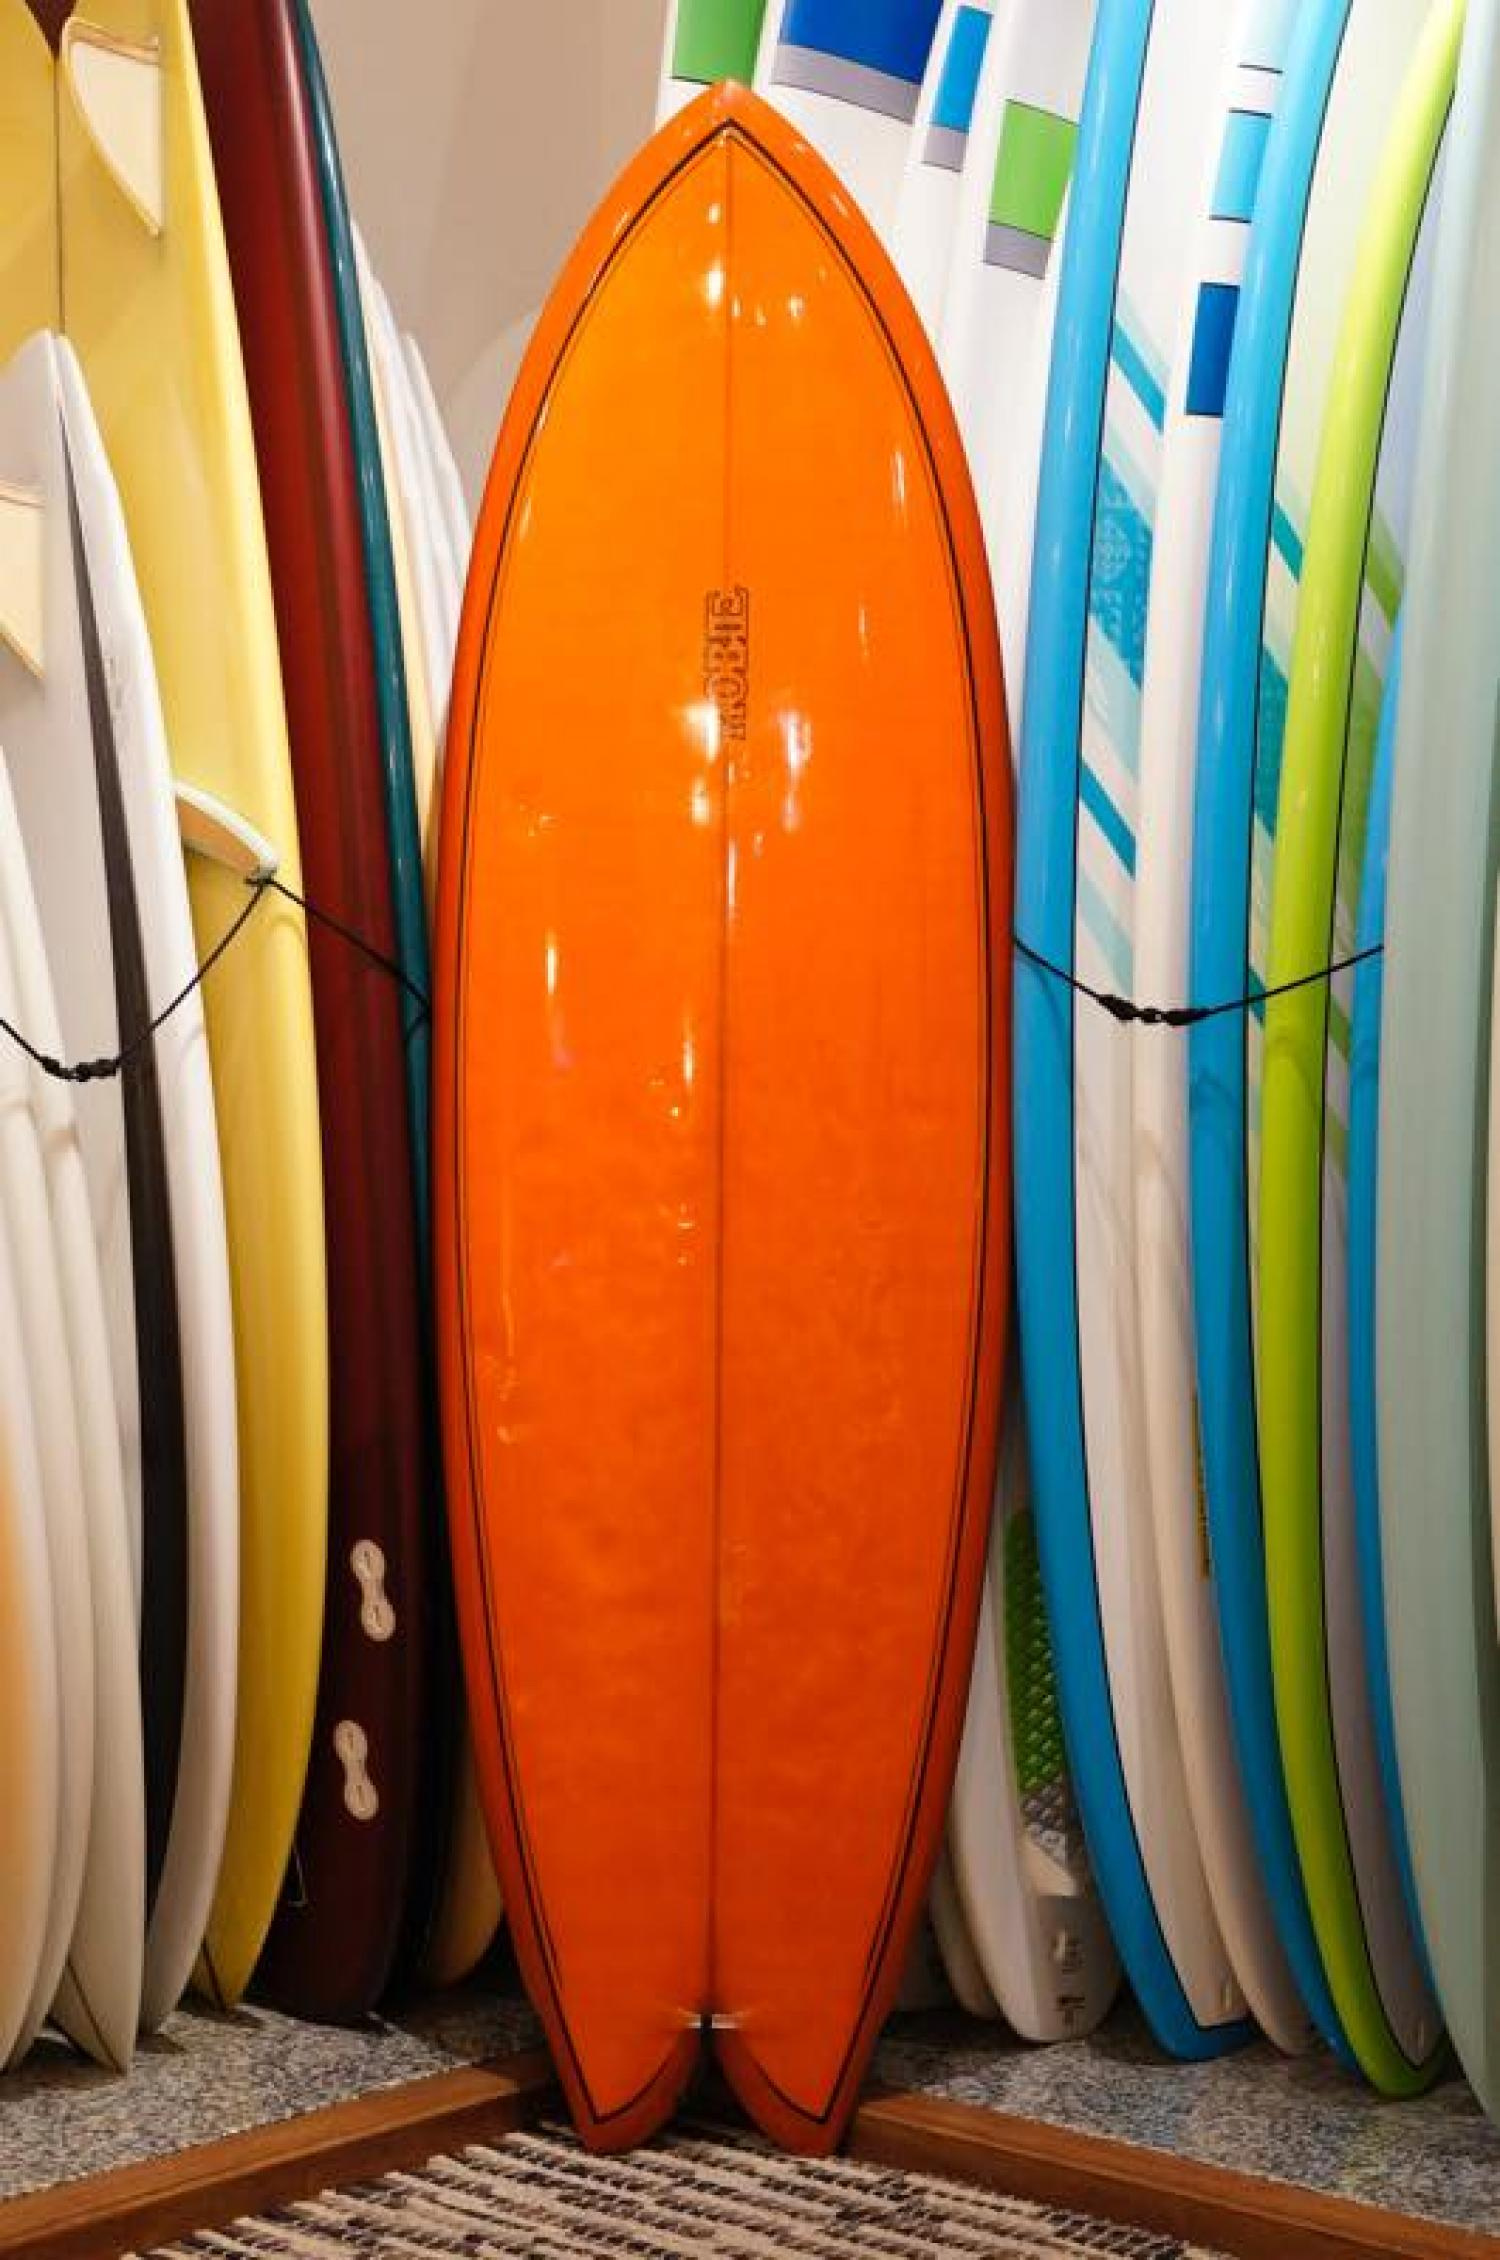 USED BOARDS (HOBIE SURFBOARDS C-4 6.4)